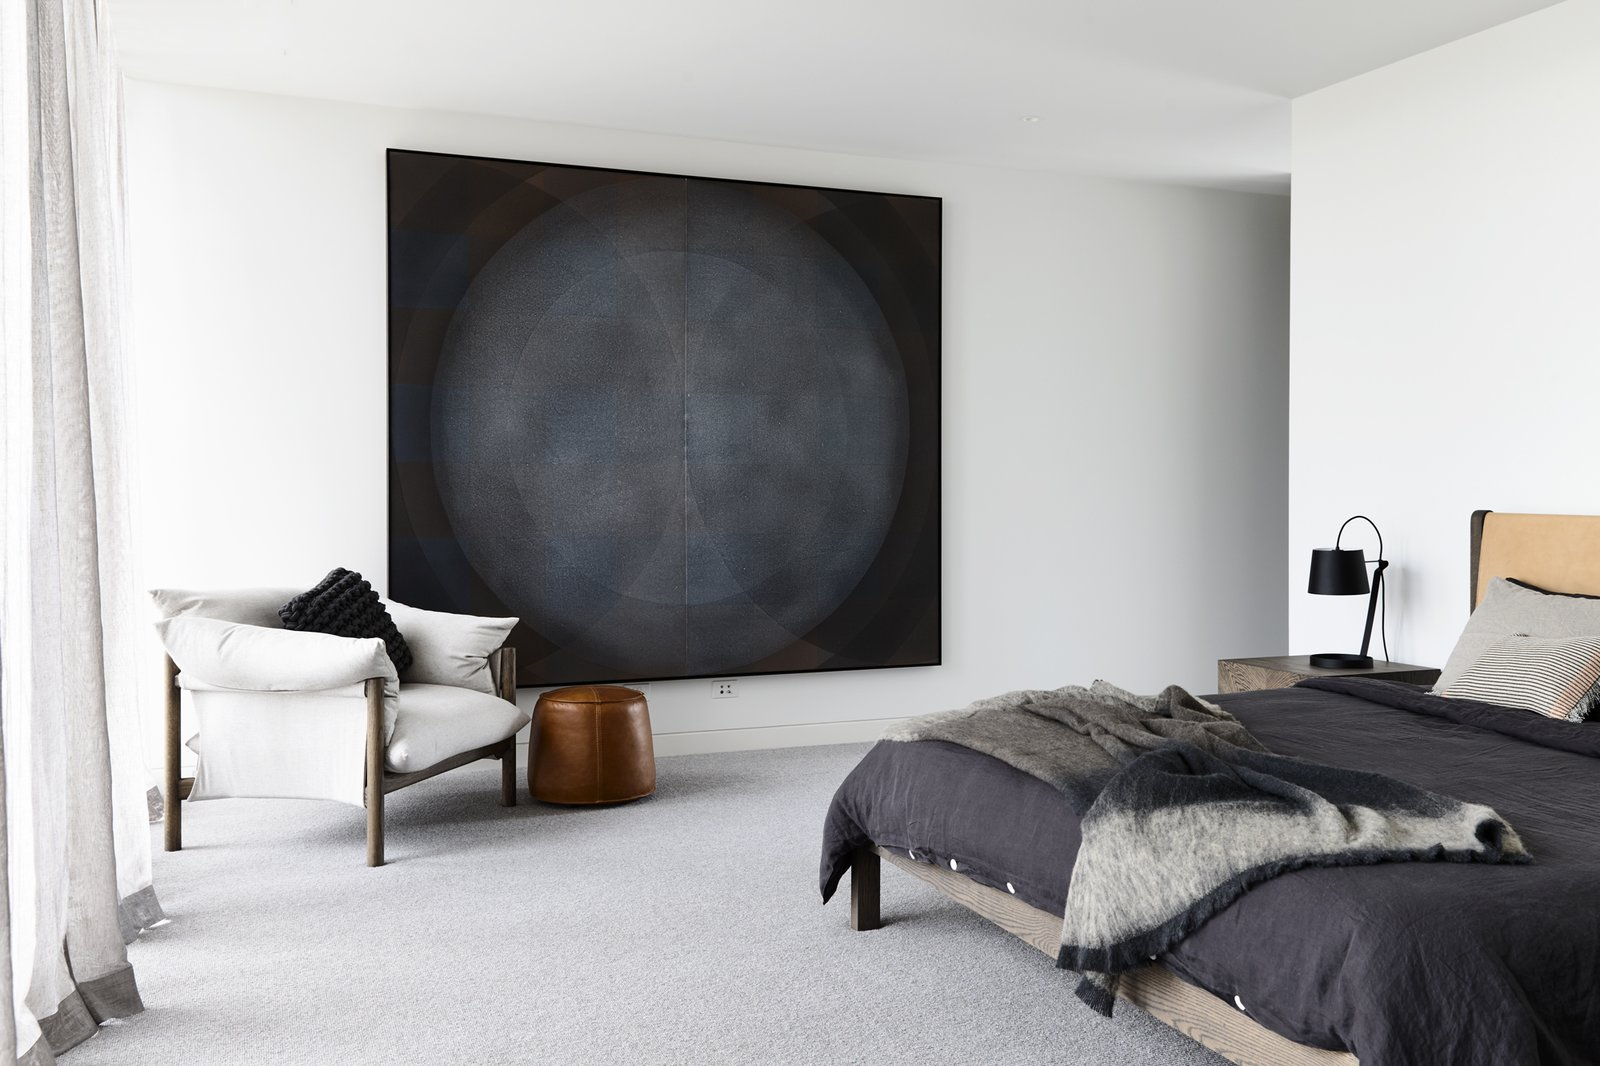 Bedroom, Bed, Chair, Ceiling Lighting, and Carpet Floor Canny 'The New' Master Bedroom  The New